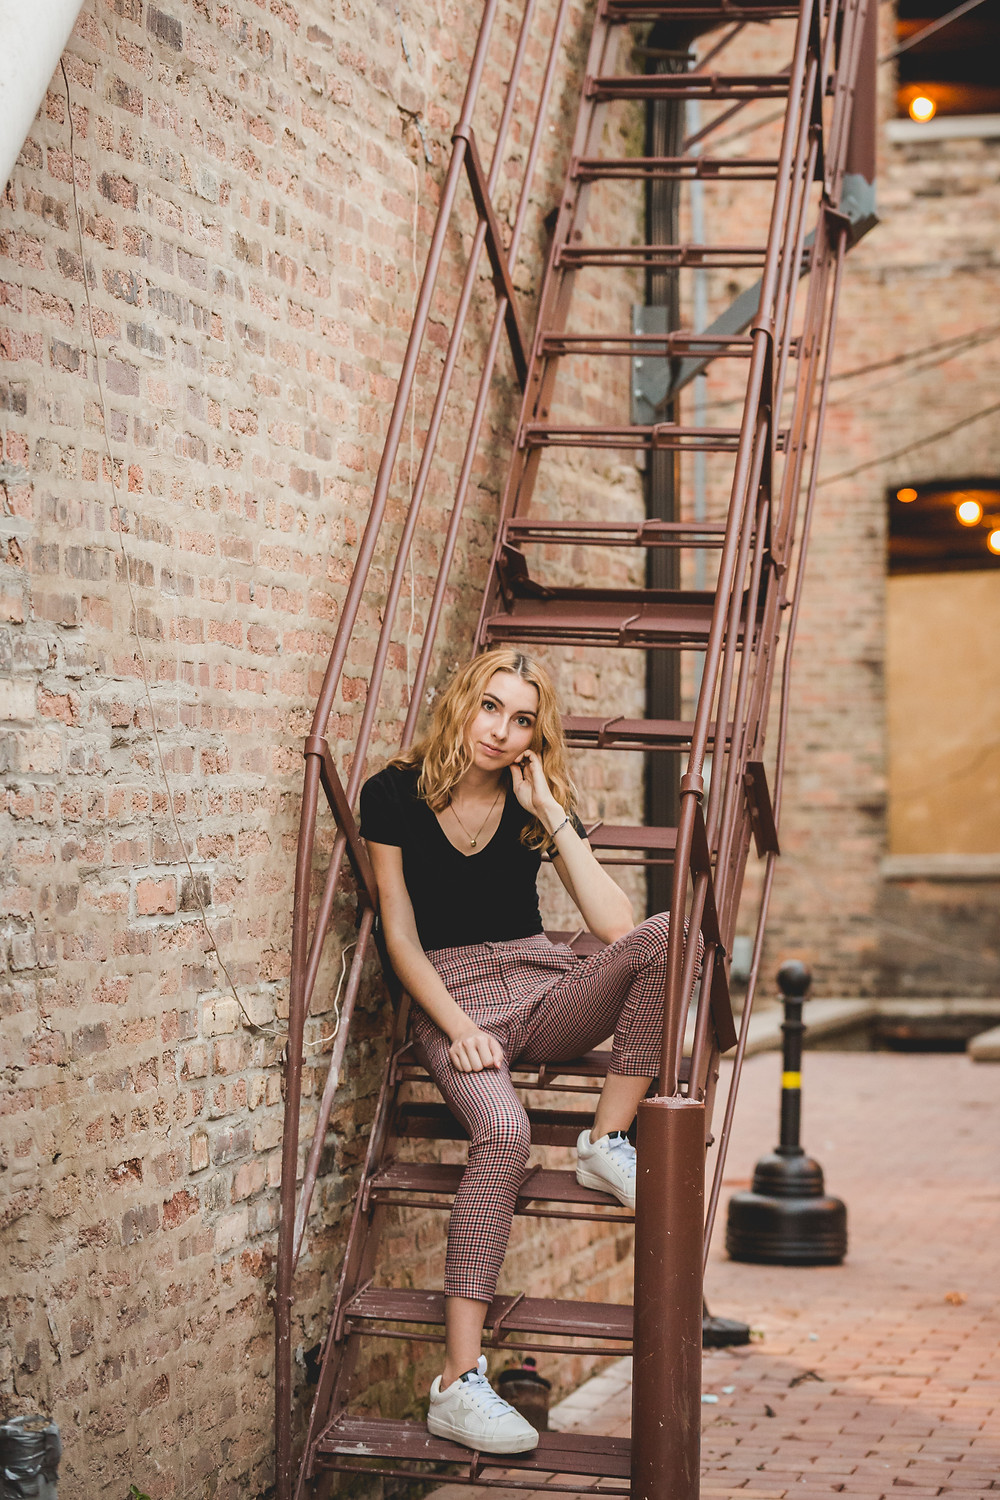 Downtown senior session, St. Charles IL senior session, Fire escape photo shoot, Composed and Exposed Photography